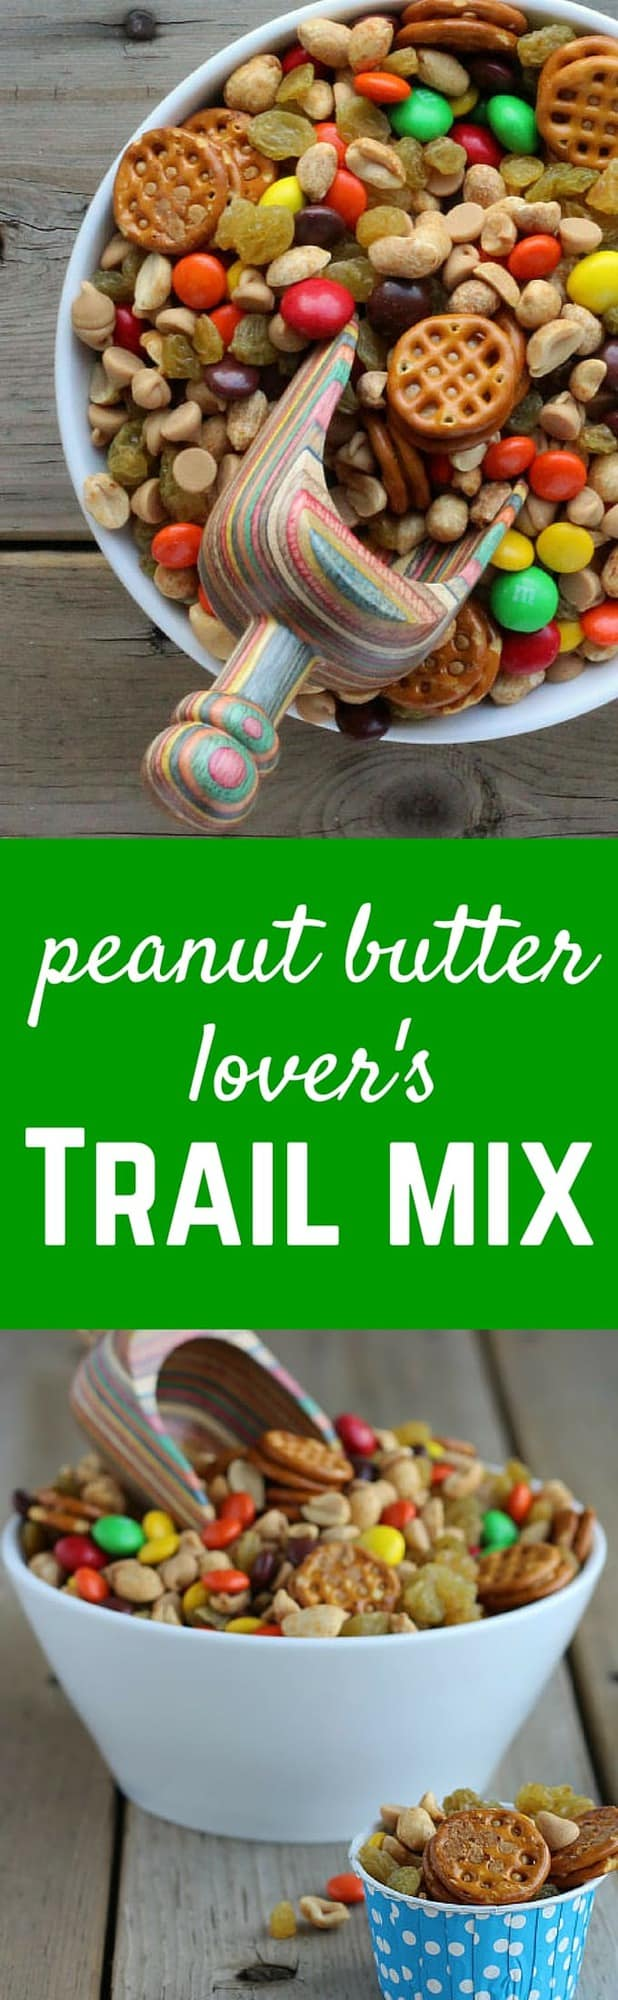 Peanut Butter Lover's Trail Mix - so much peanut butter goodness in this fun snack! Get the easy recipe on RachelCooks.com!